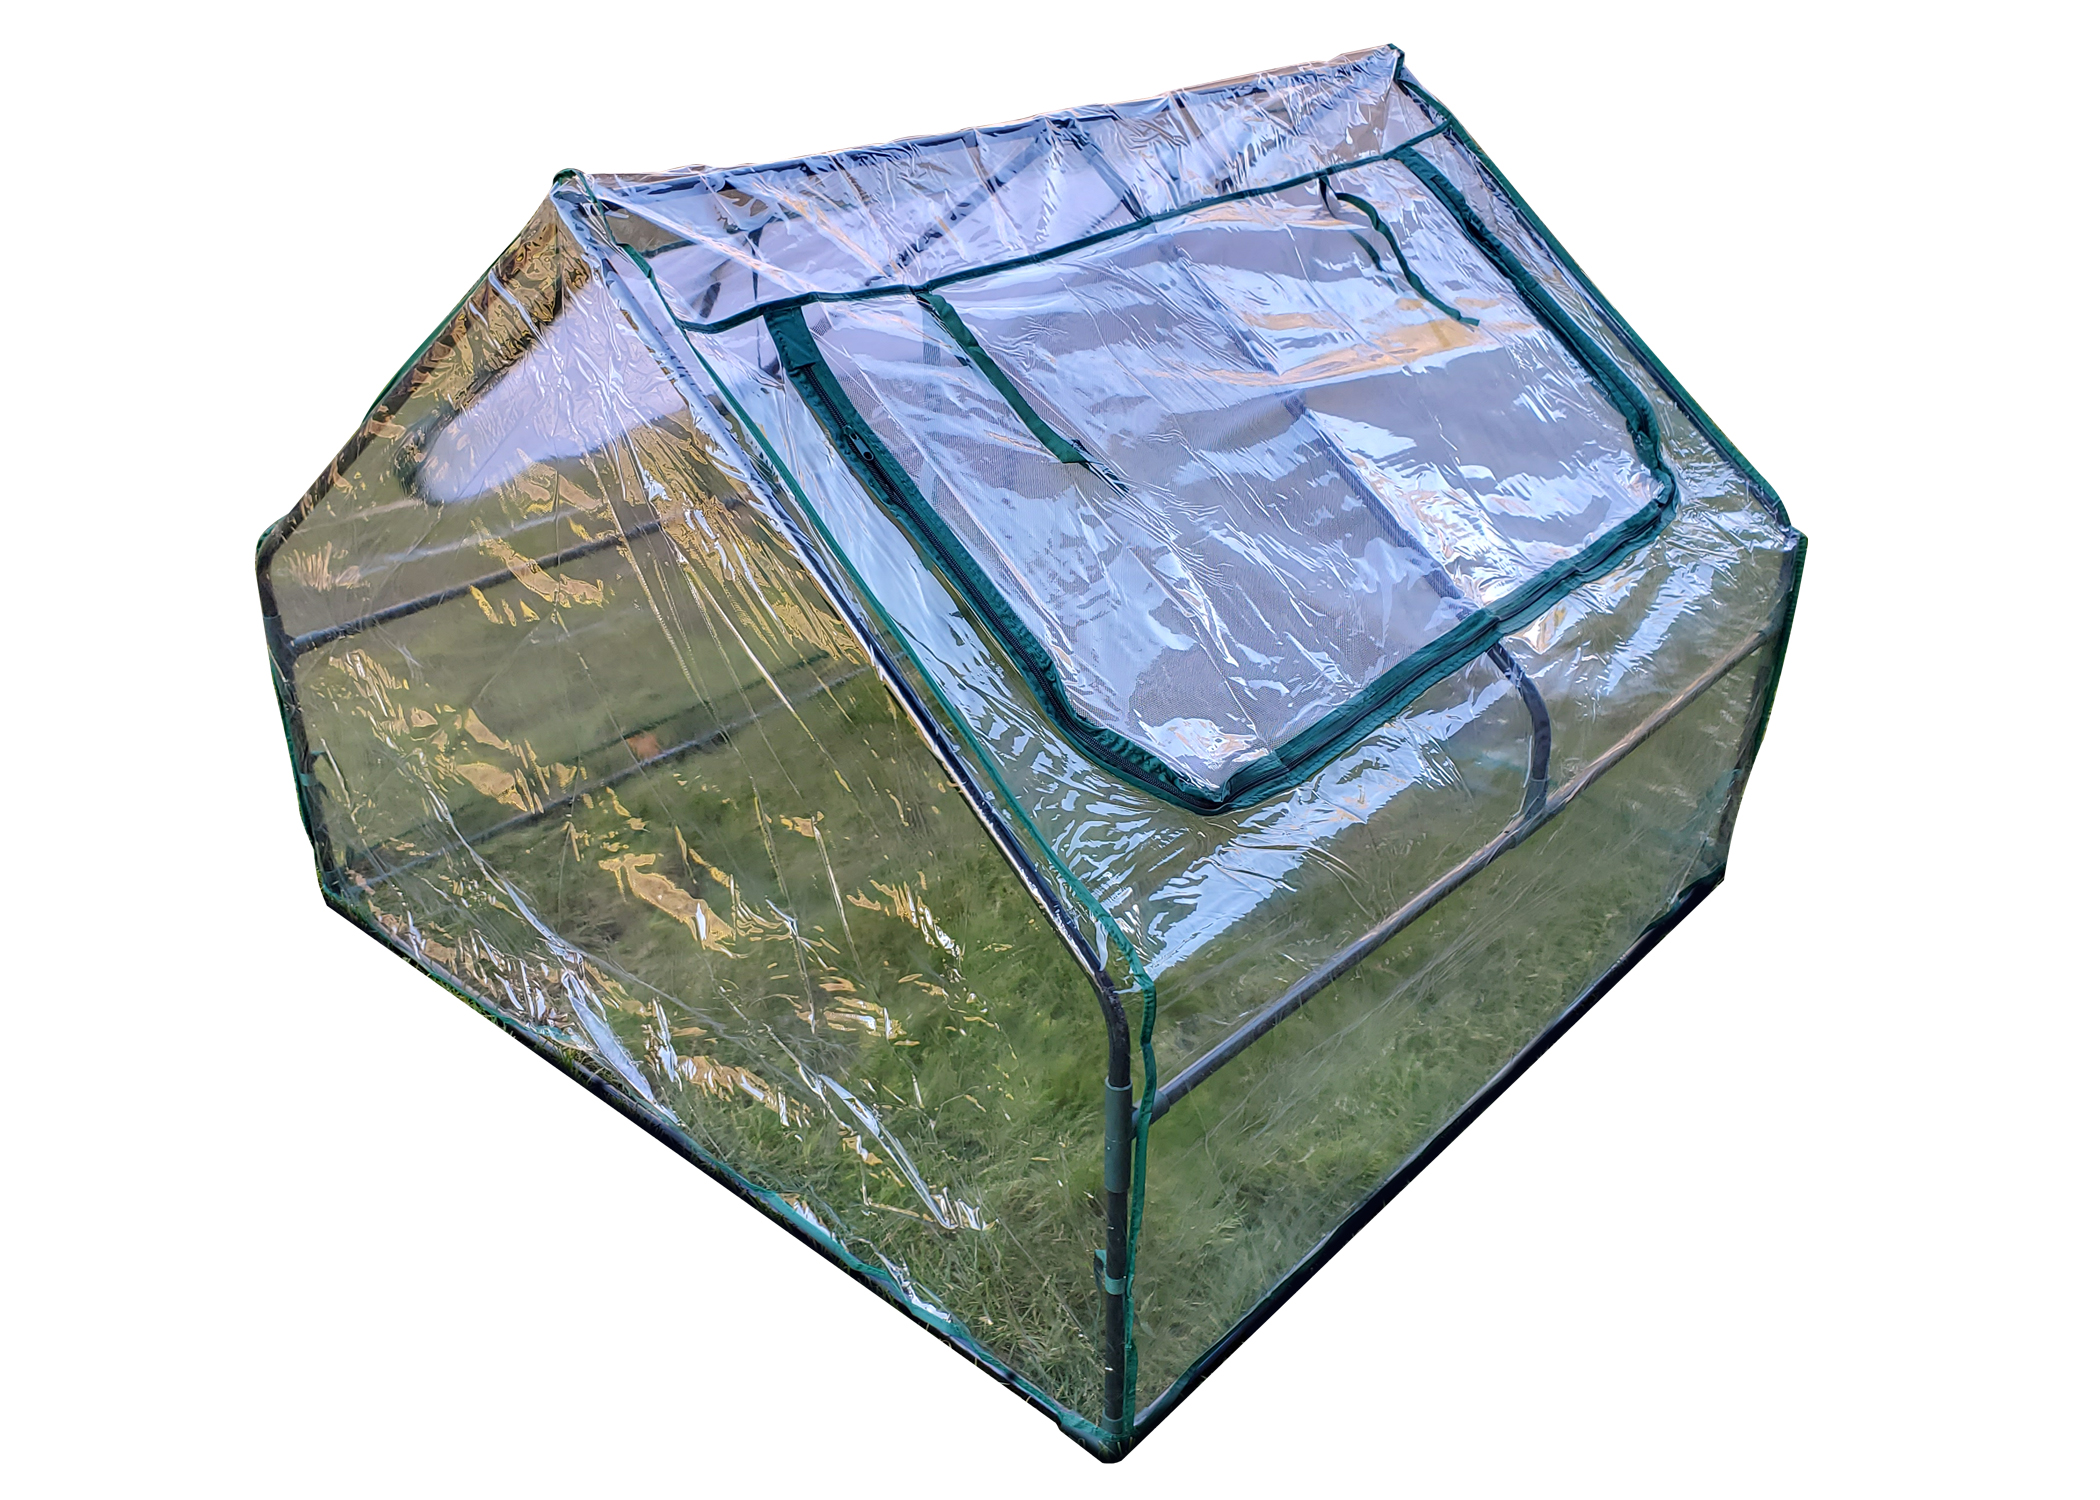 Mini Greenhouse SH3214A Greenhouse, 4-Feet by 4-Feet by 36-Inch